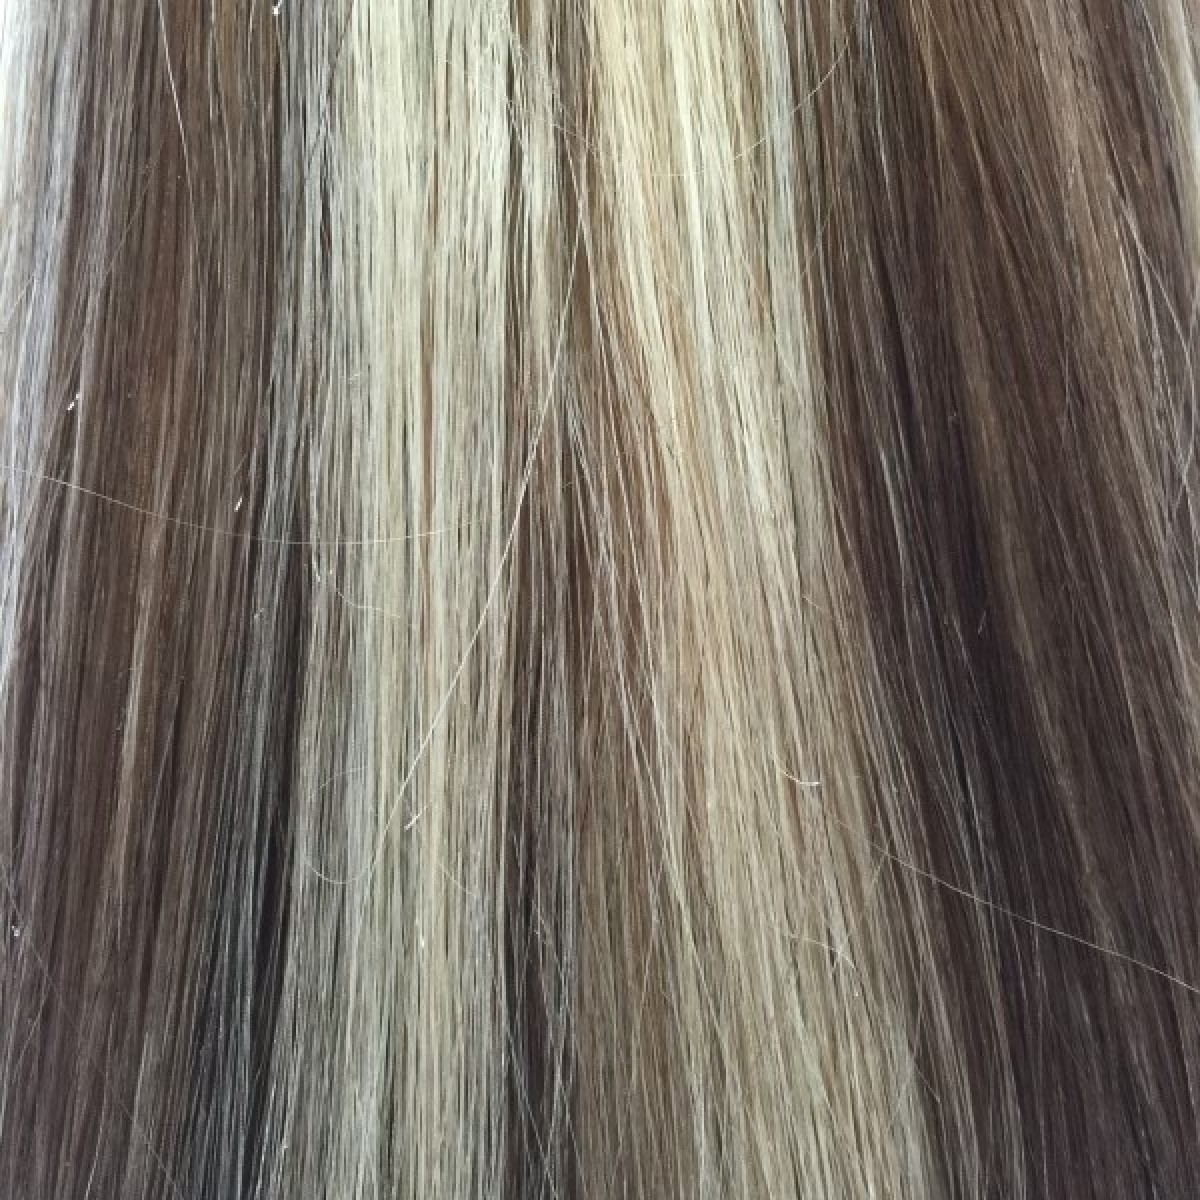 Medium Brown Platinum Blonde Highlights 20 Inch Standard Clip In